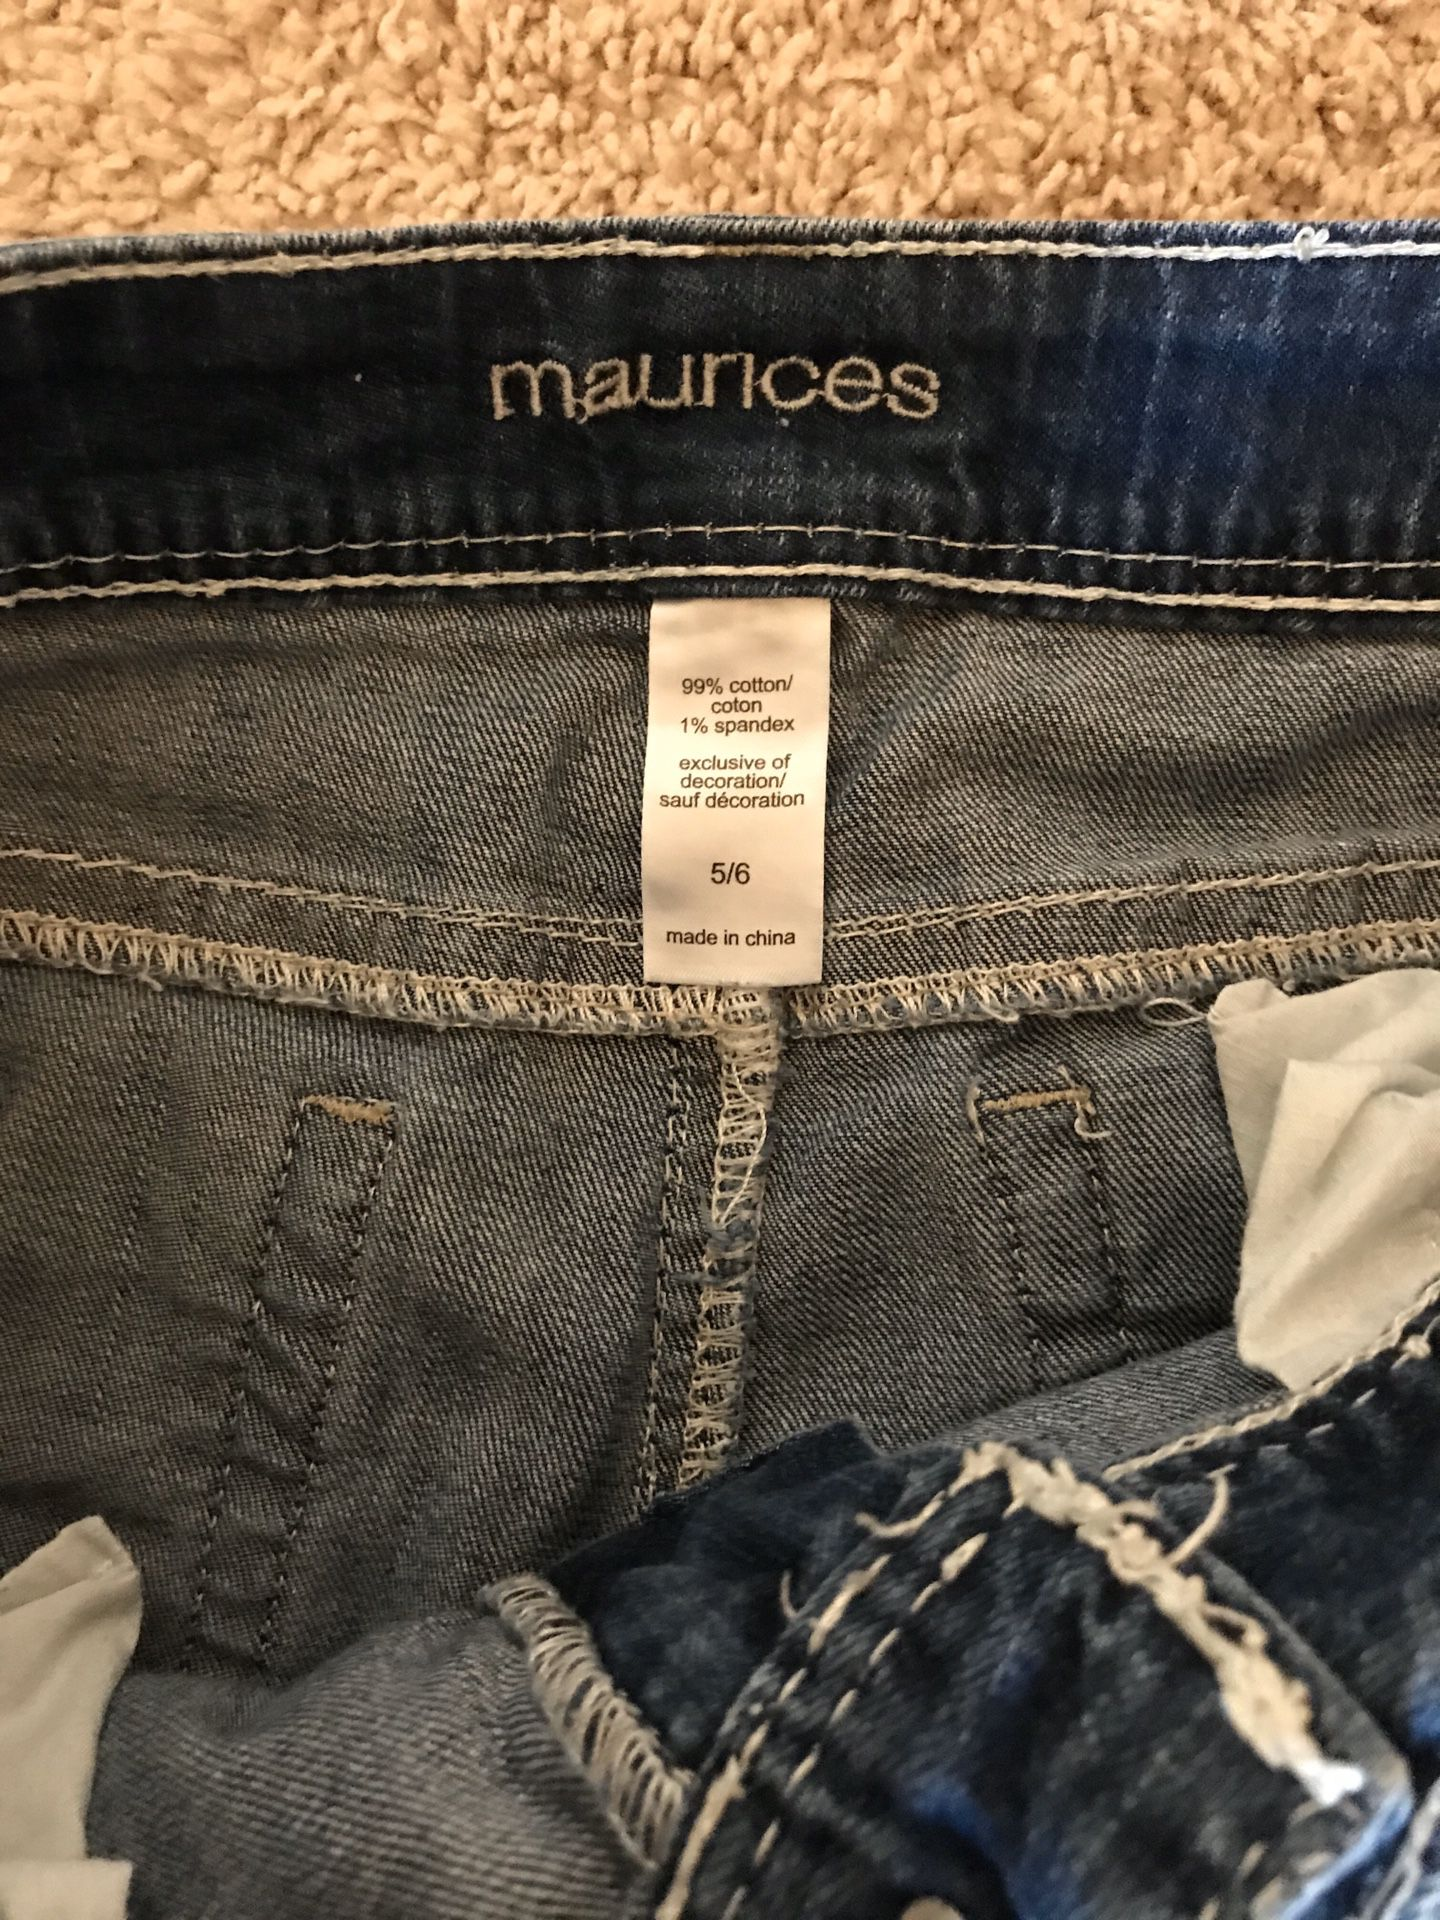 Maurice's women's jeans size 5/6